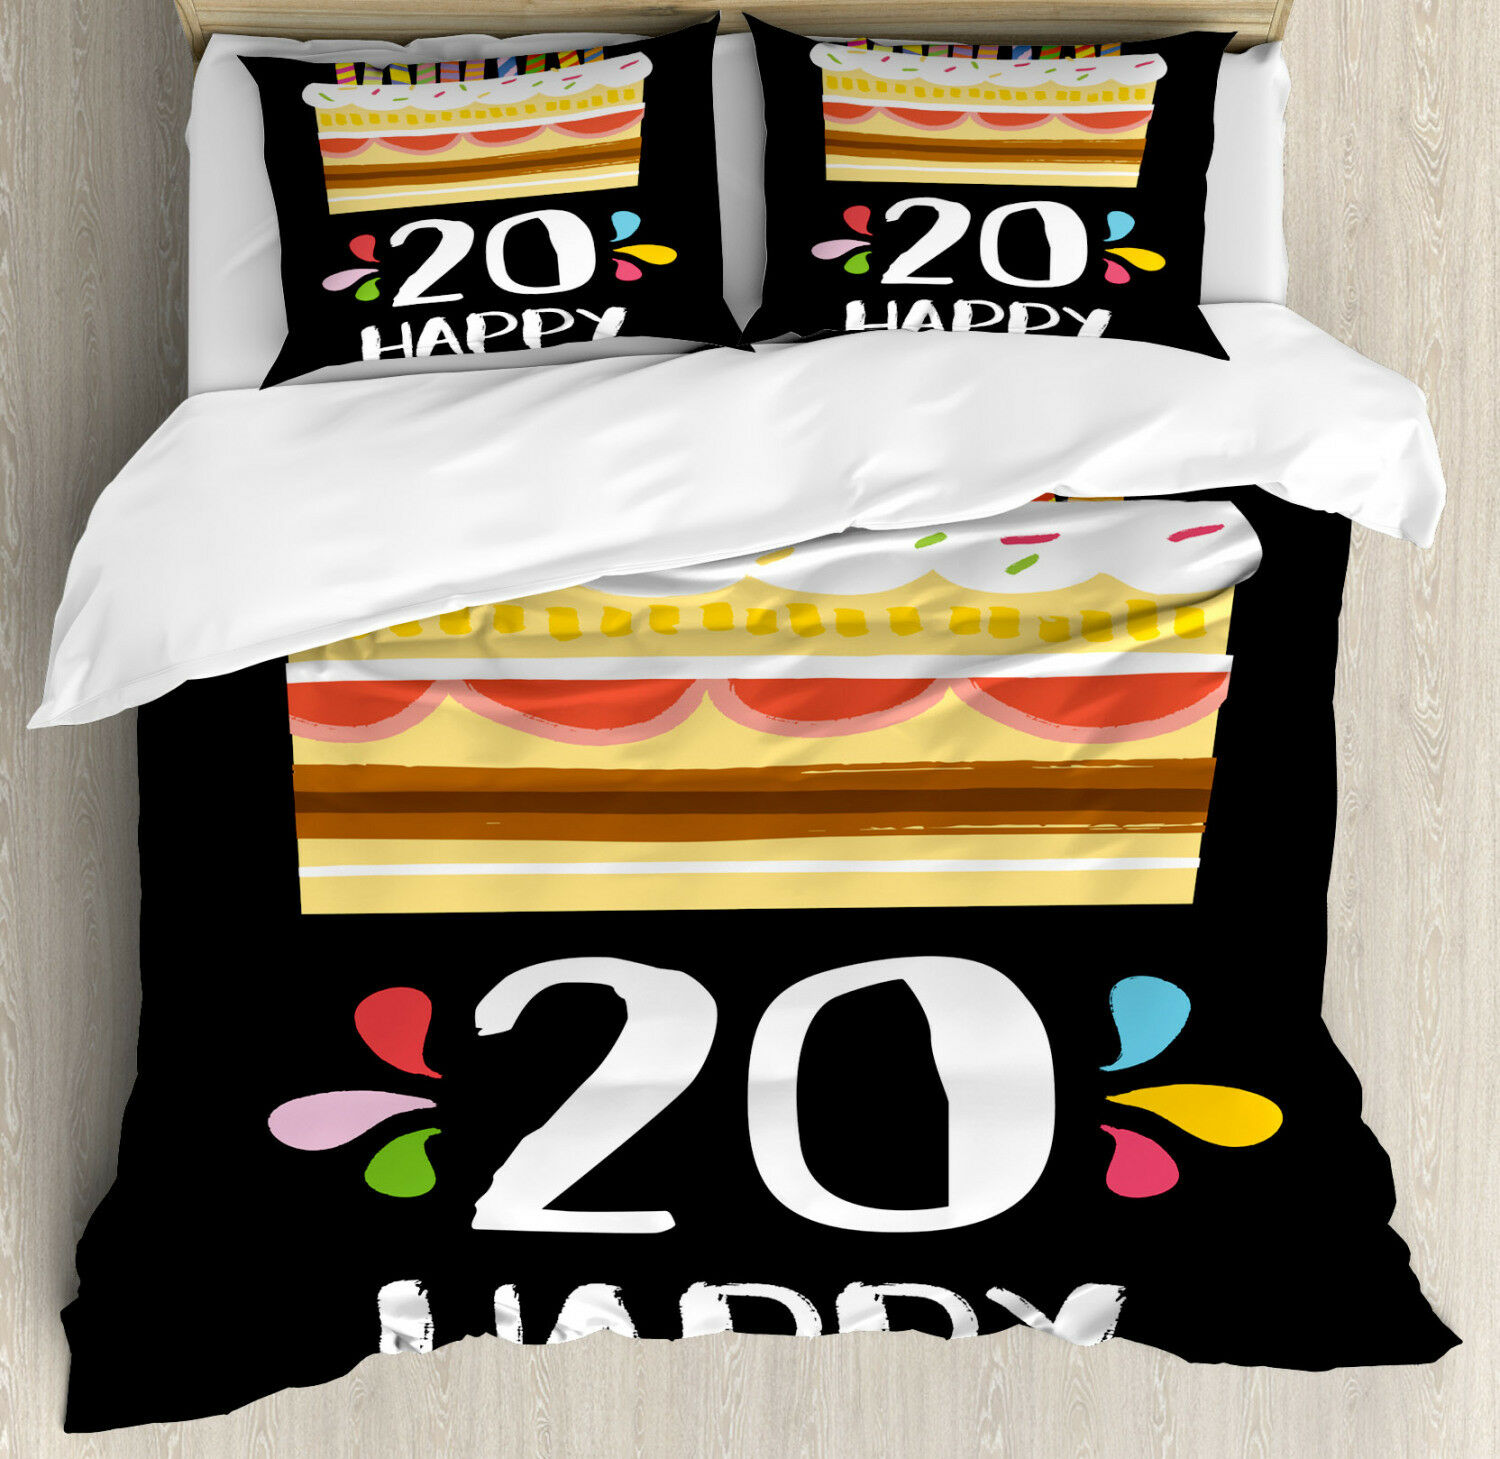 Vintage Duvet Cover Set with Pillow Shams Party Cake Candles Print